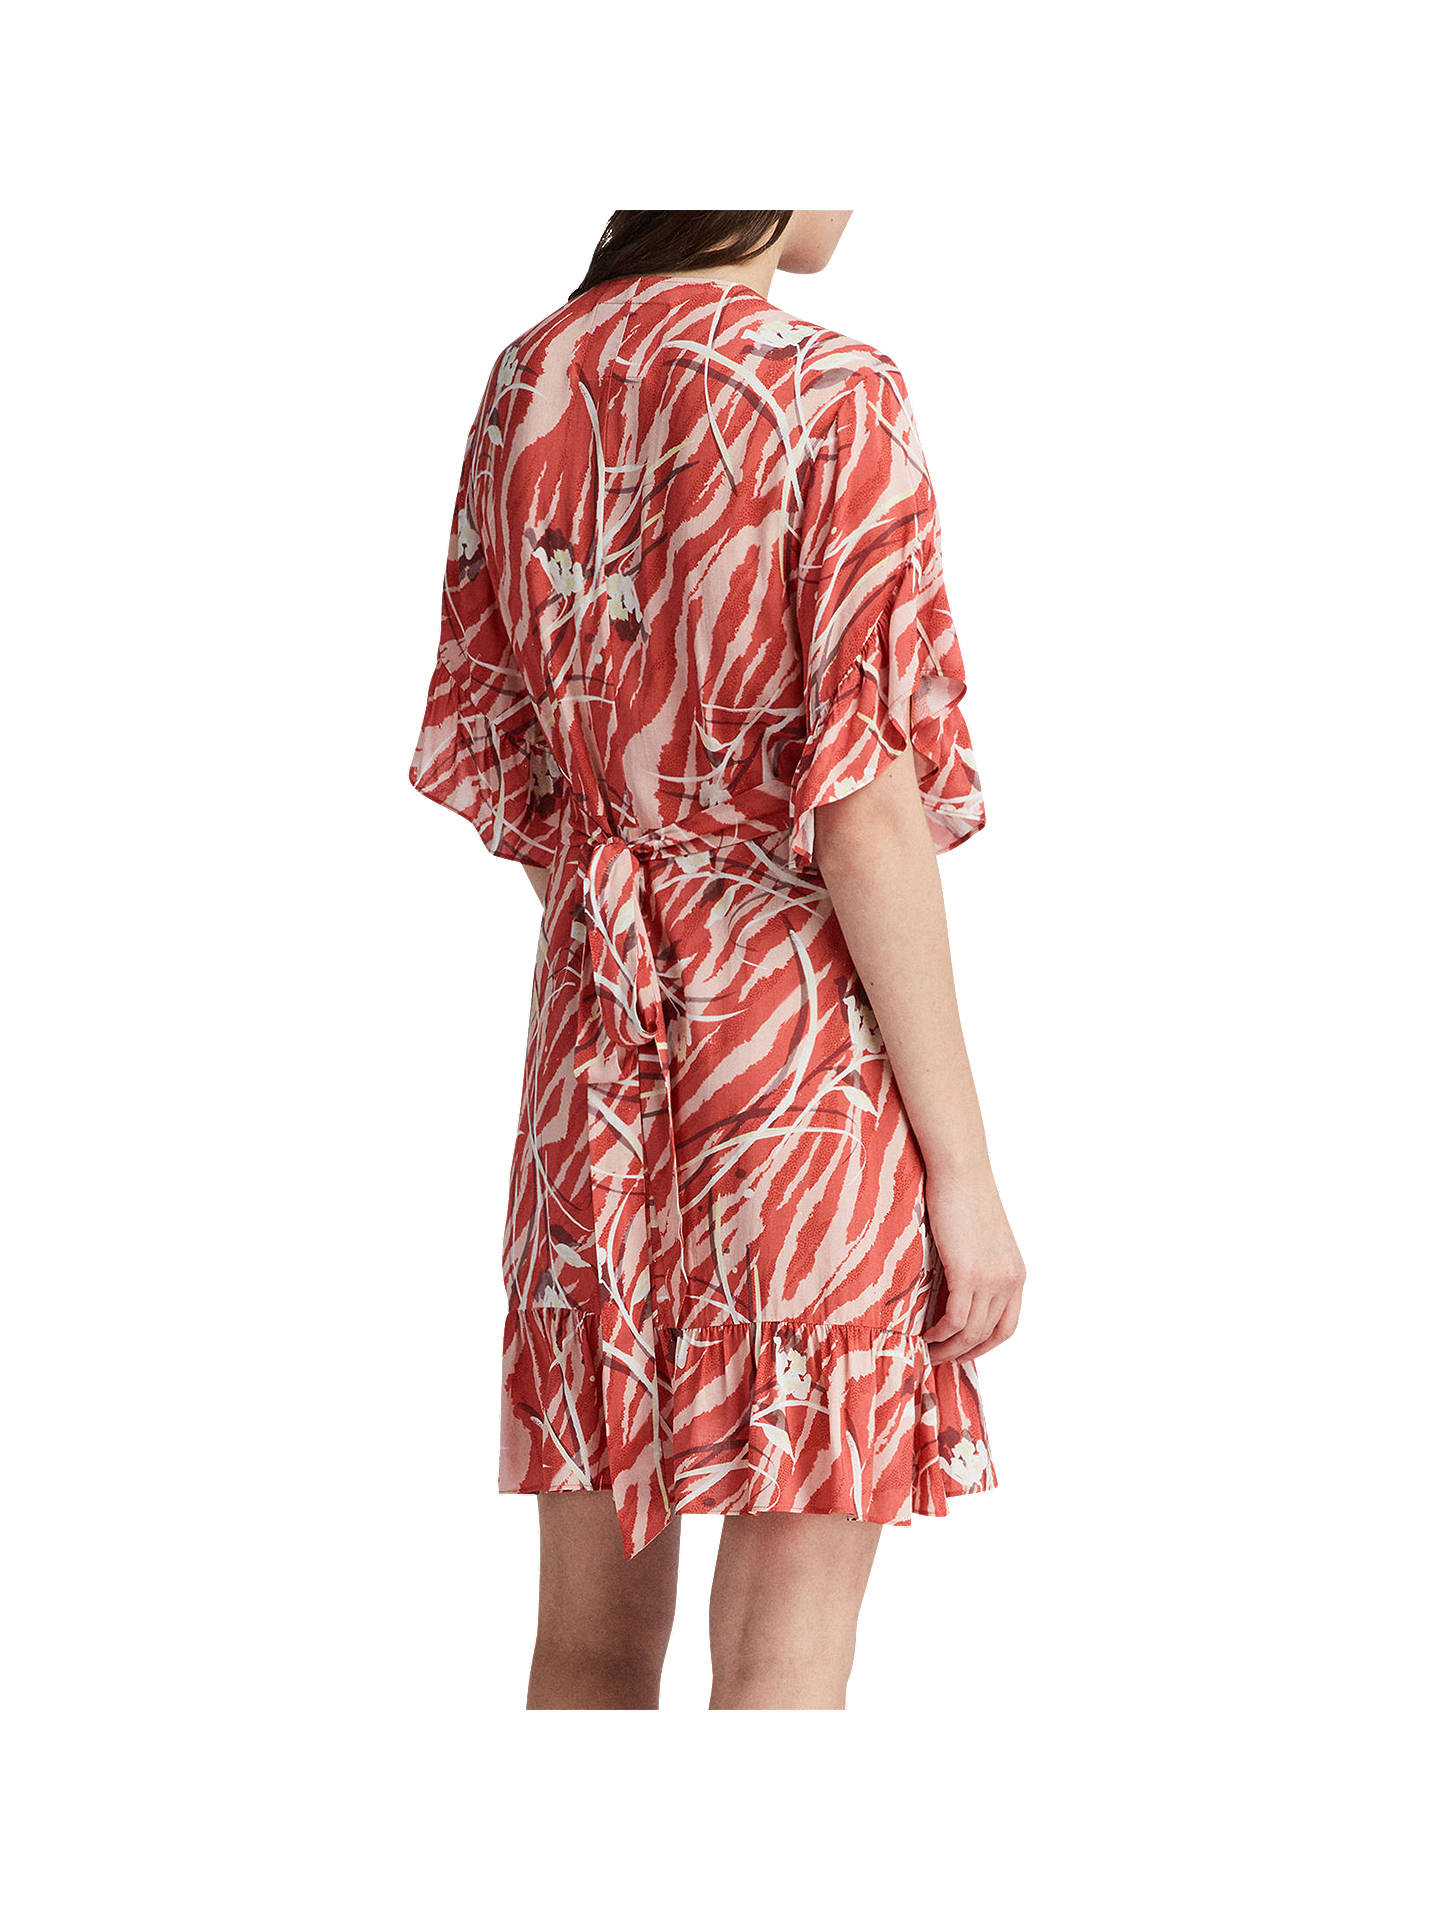 pottery barn marlowe vase of allsaints marlow kazuno print dress red at john lewis partners regarding buyallsaints marlow kazuno print dress red 6 online at johnlewis com